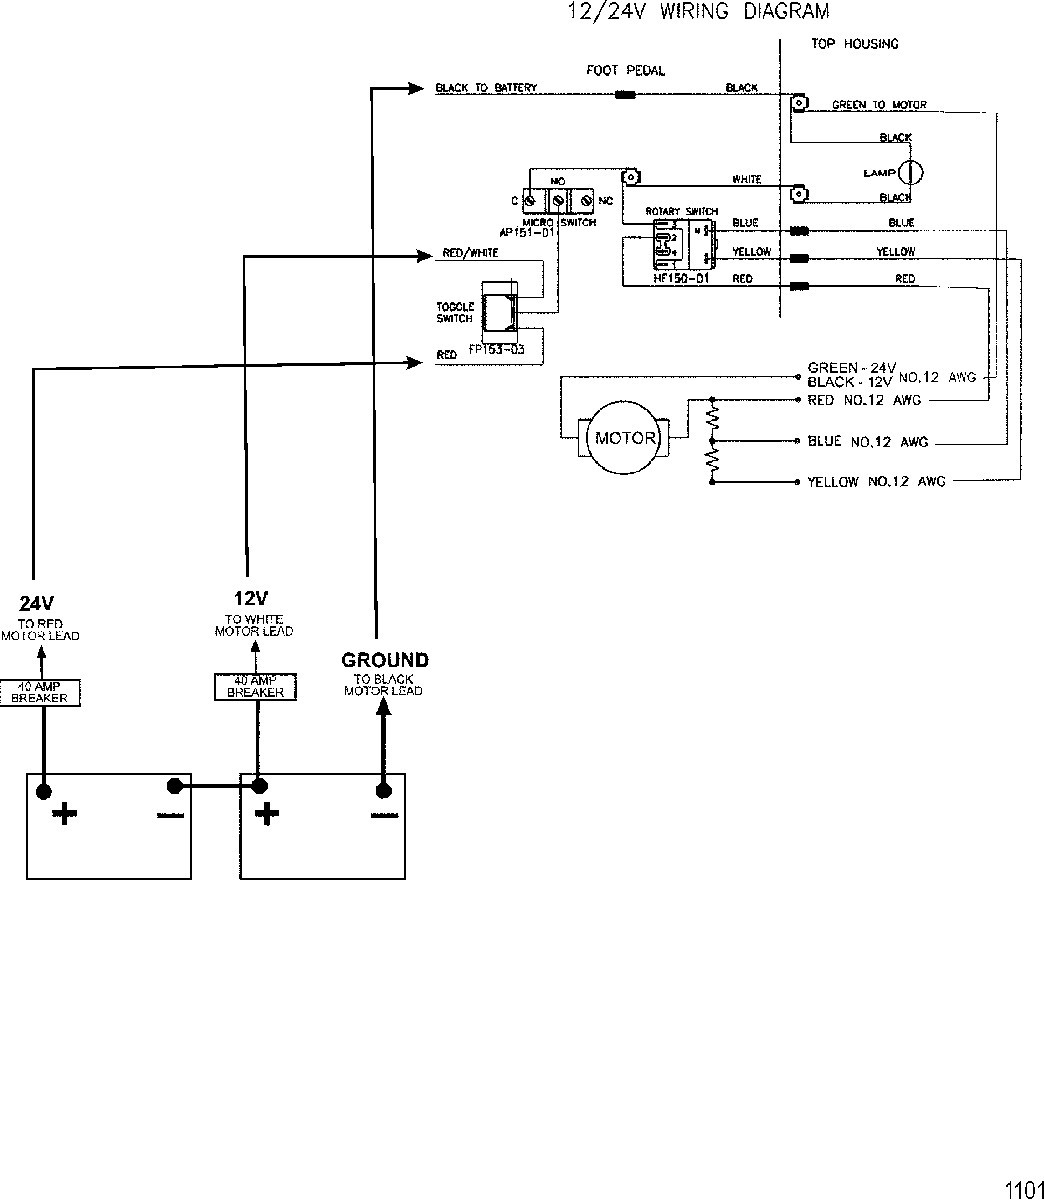 12v trolling motor wiring diagram Collection-Motorguide Trolling Motor Wiring Diagram Trying To Repair A Friends Tearing 3 1-b